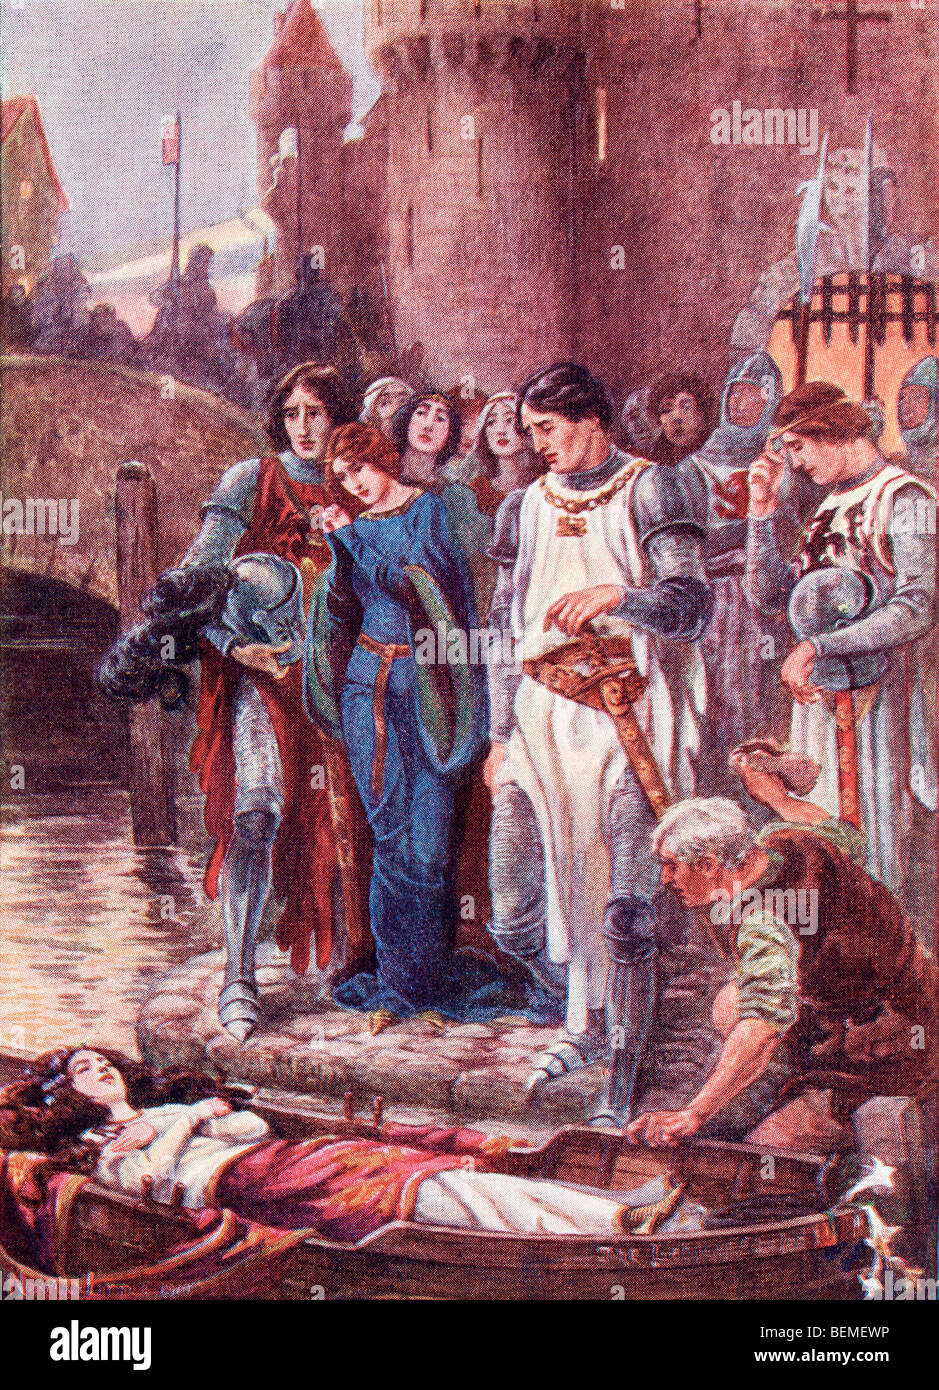 the lady of shallot sir lancelot On the island are four gray walls and four gray towers, and within is the lady of shalott in part iii, the handsome and courageous sir lancelot is introduced the language is sensual and heroic, and the lady of shalott is as entranced as the reader.